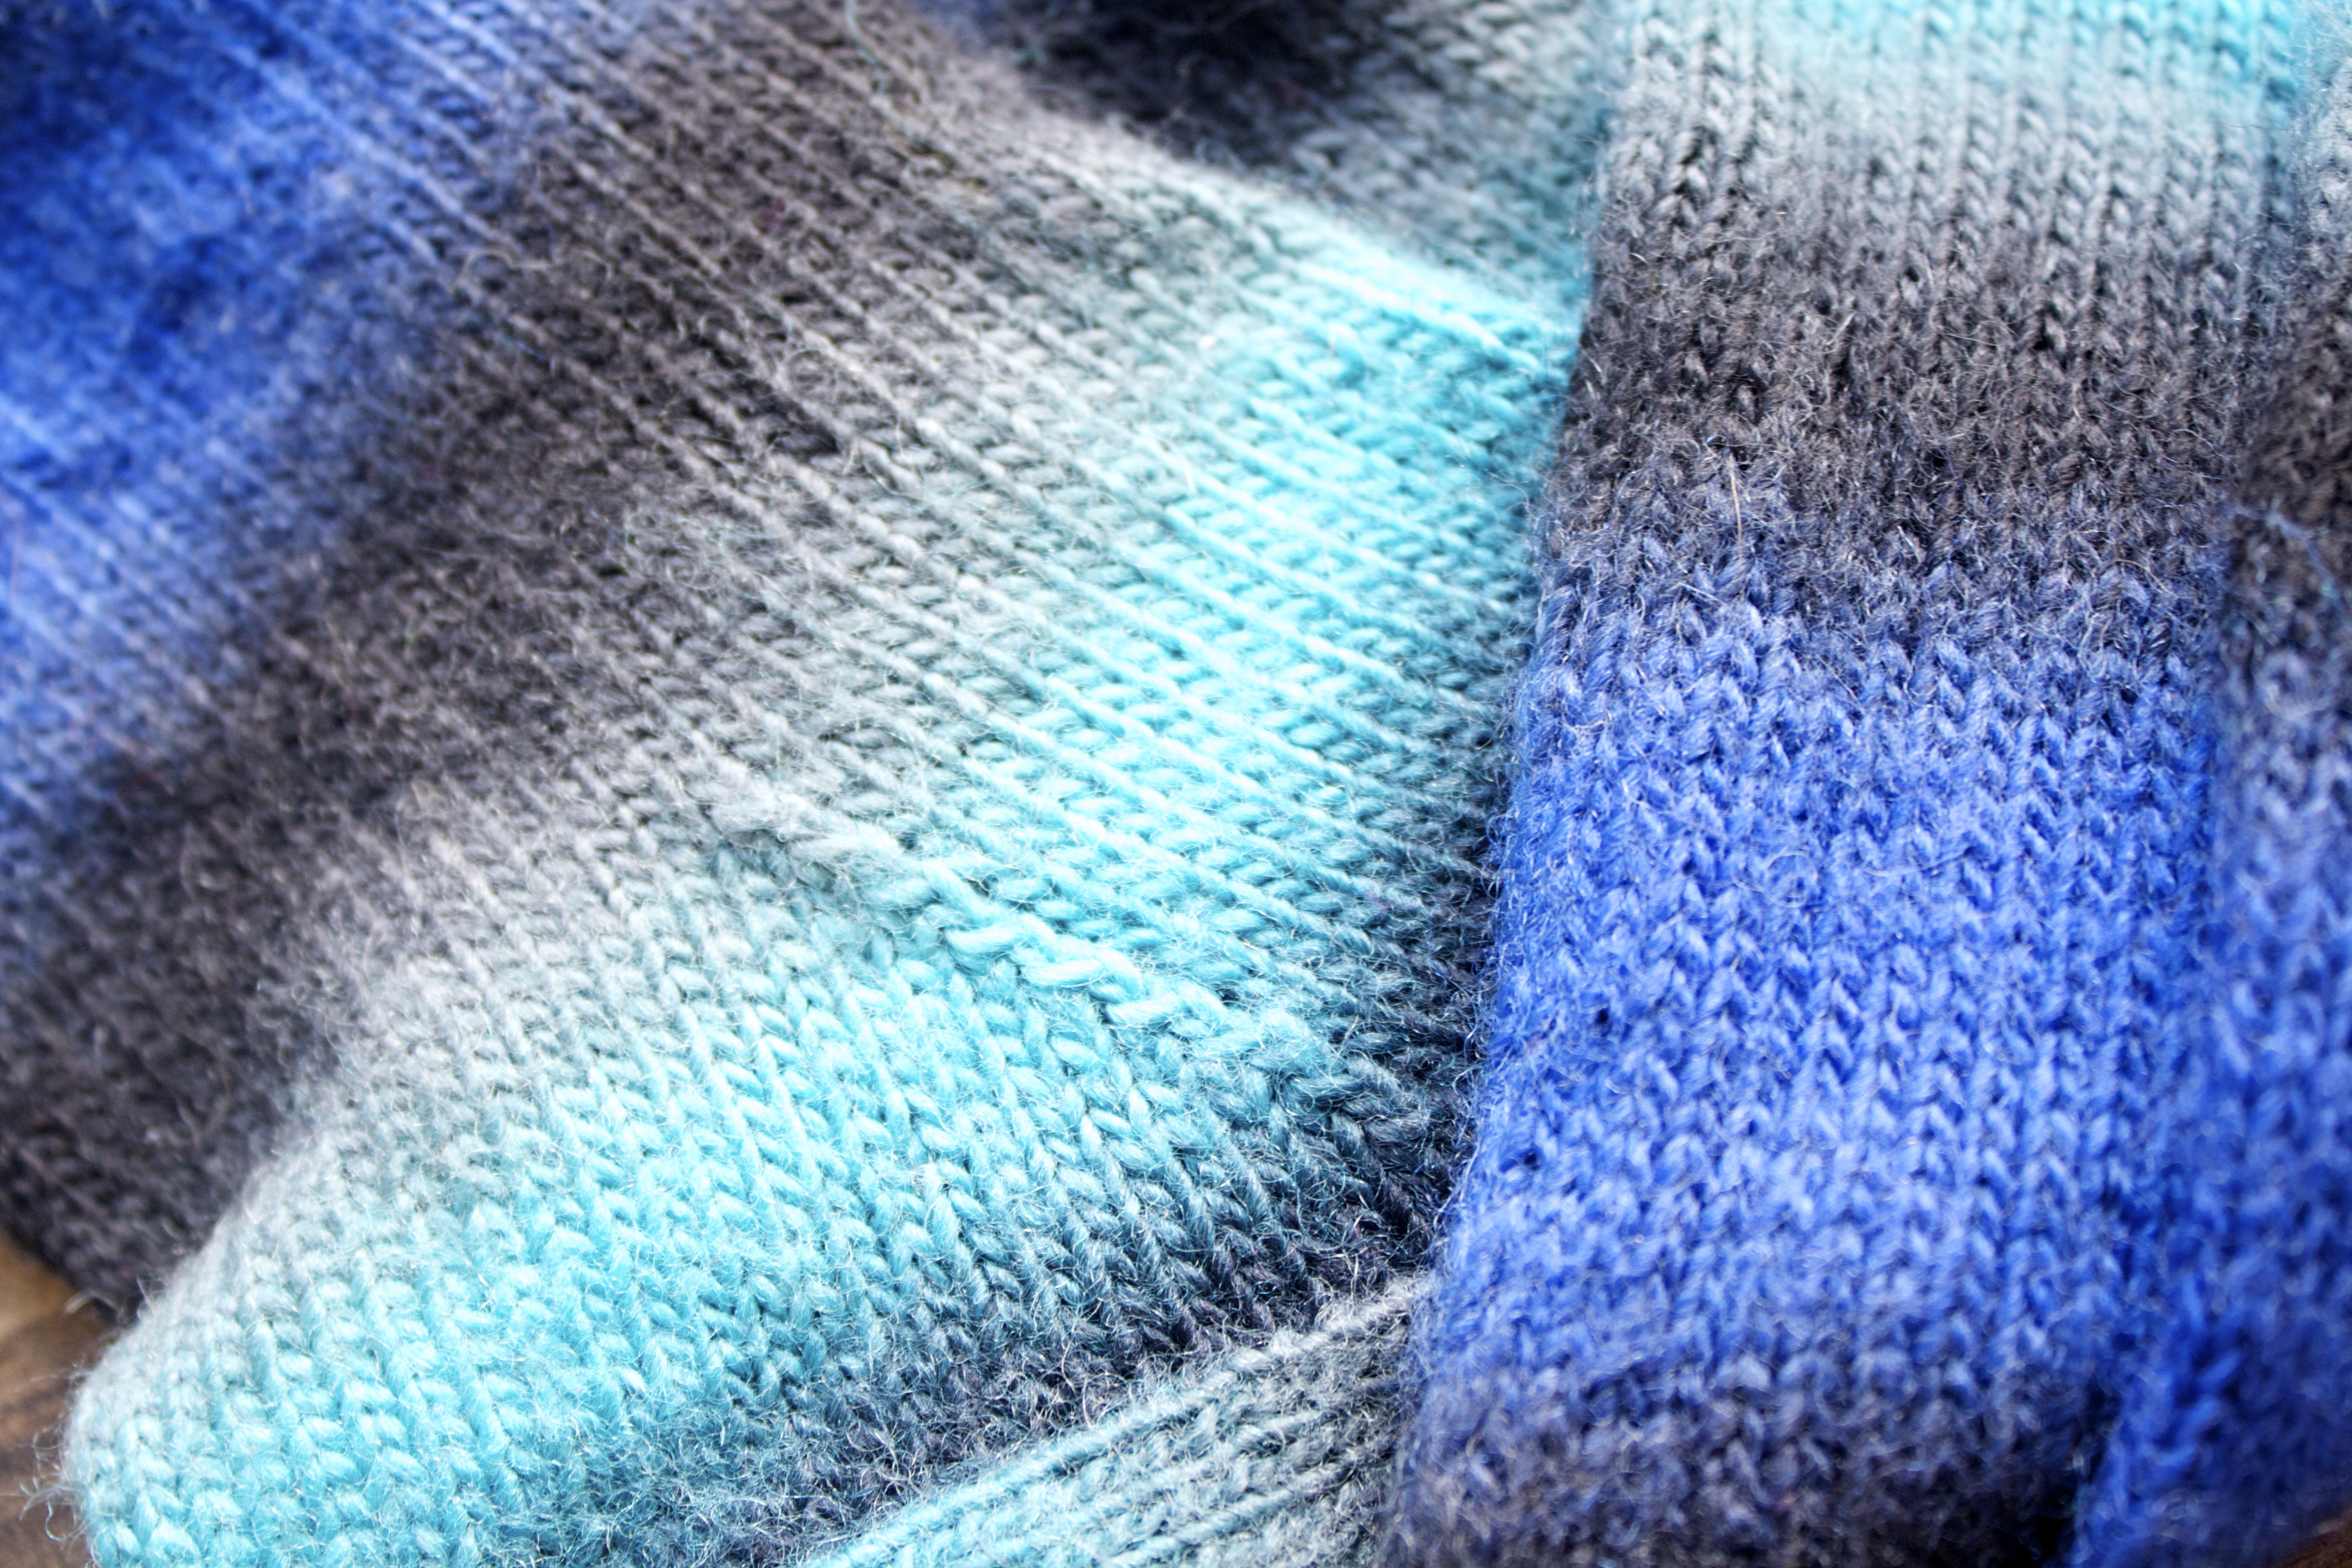 The colours are wonderful.  The greys make the aqua and blue really pop!